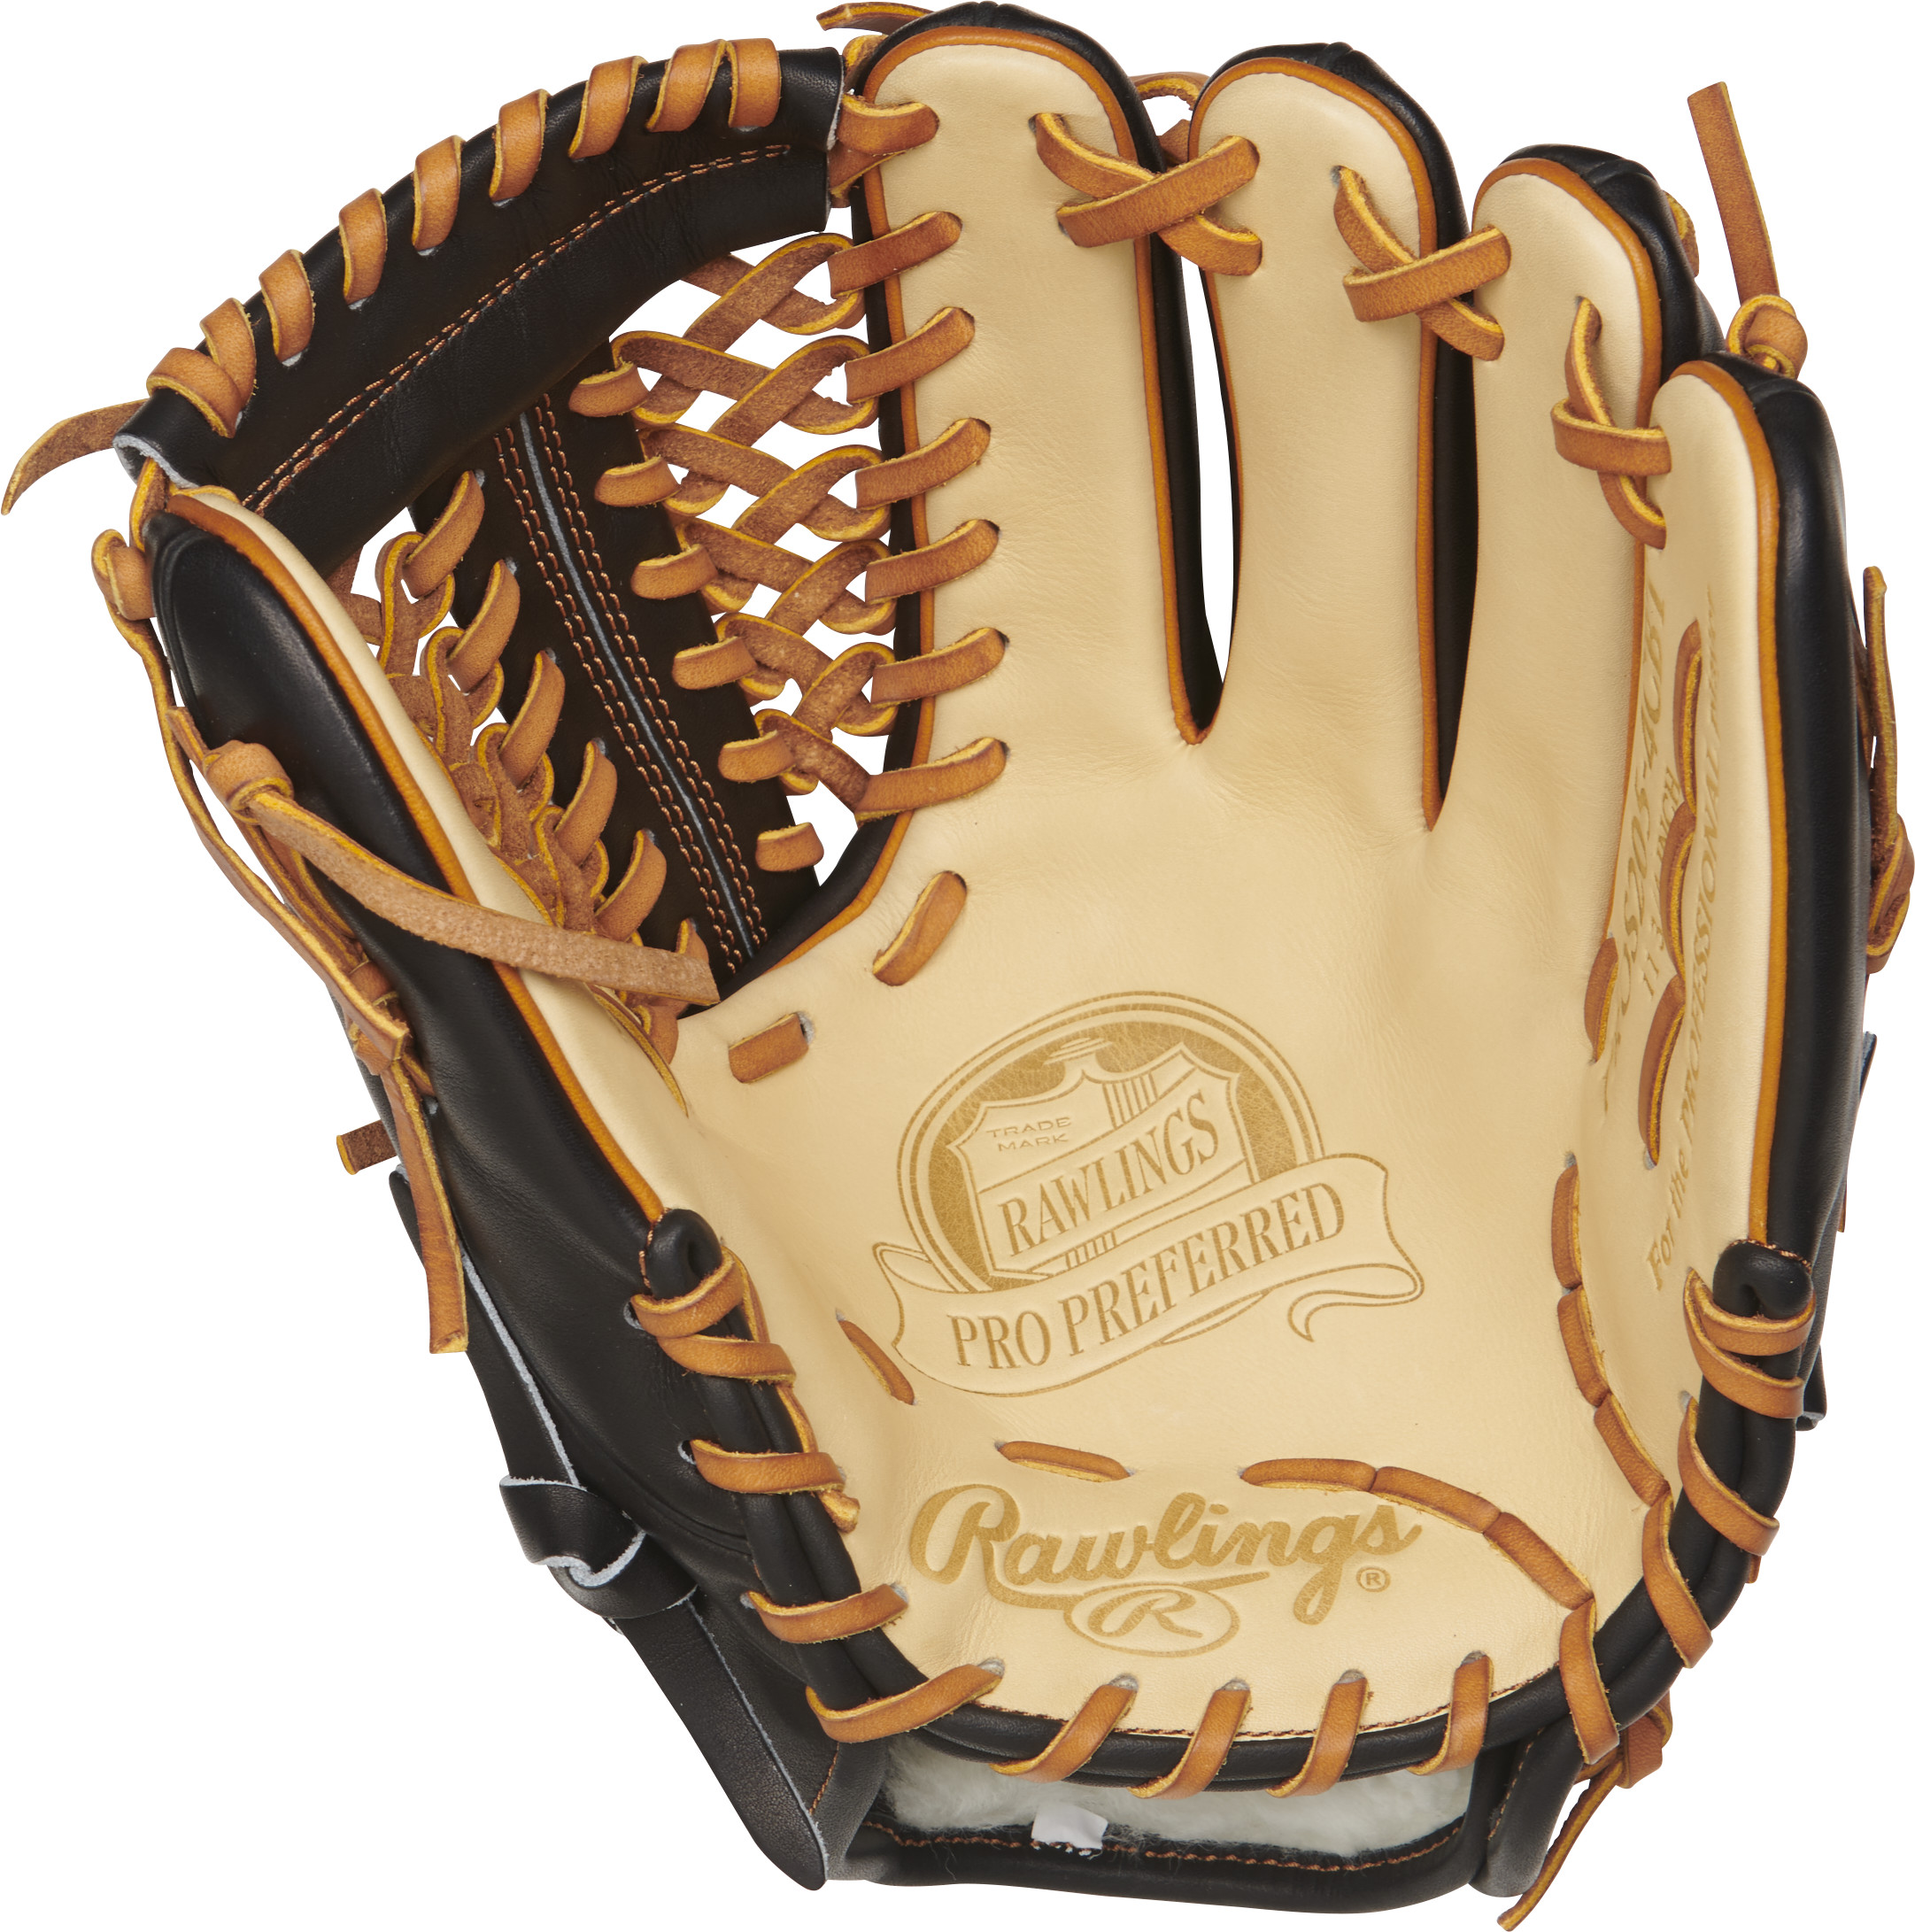 http://www.bestbatdeals.com/images/gloves/rawlings/PROS205-4CBT-1.jpg